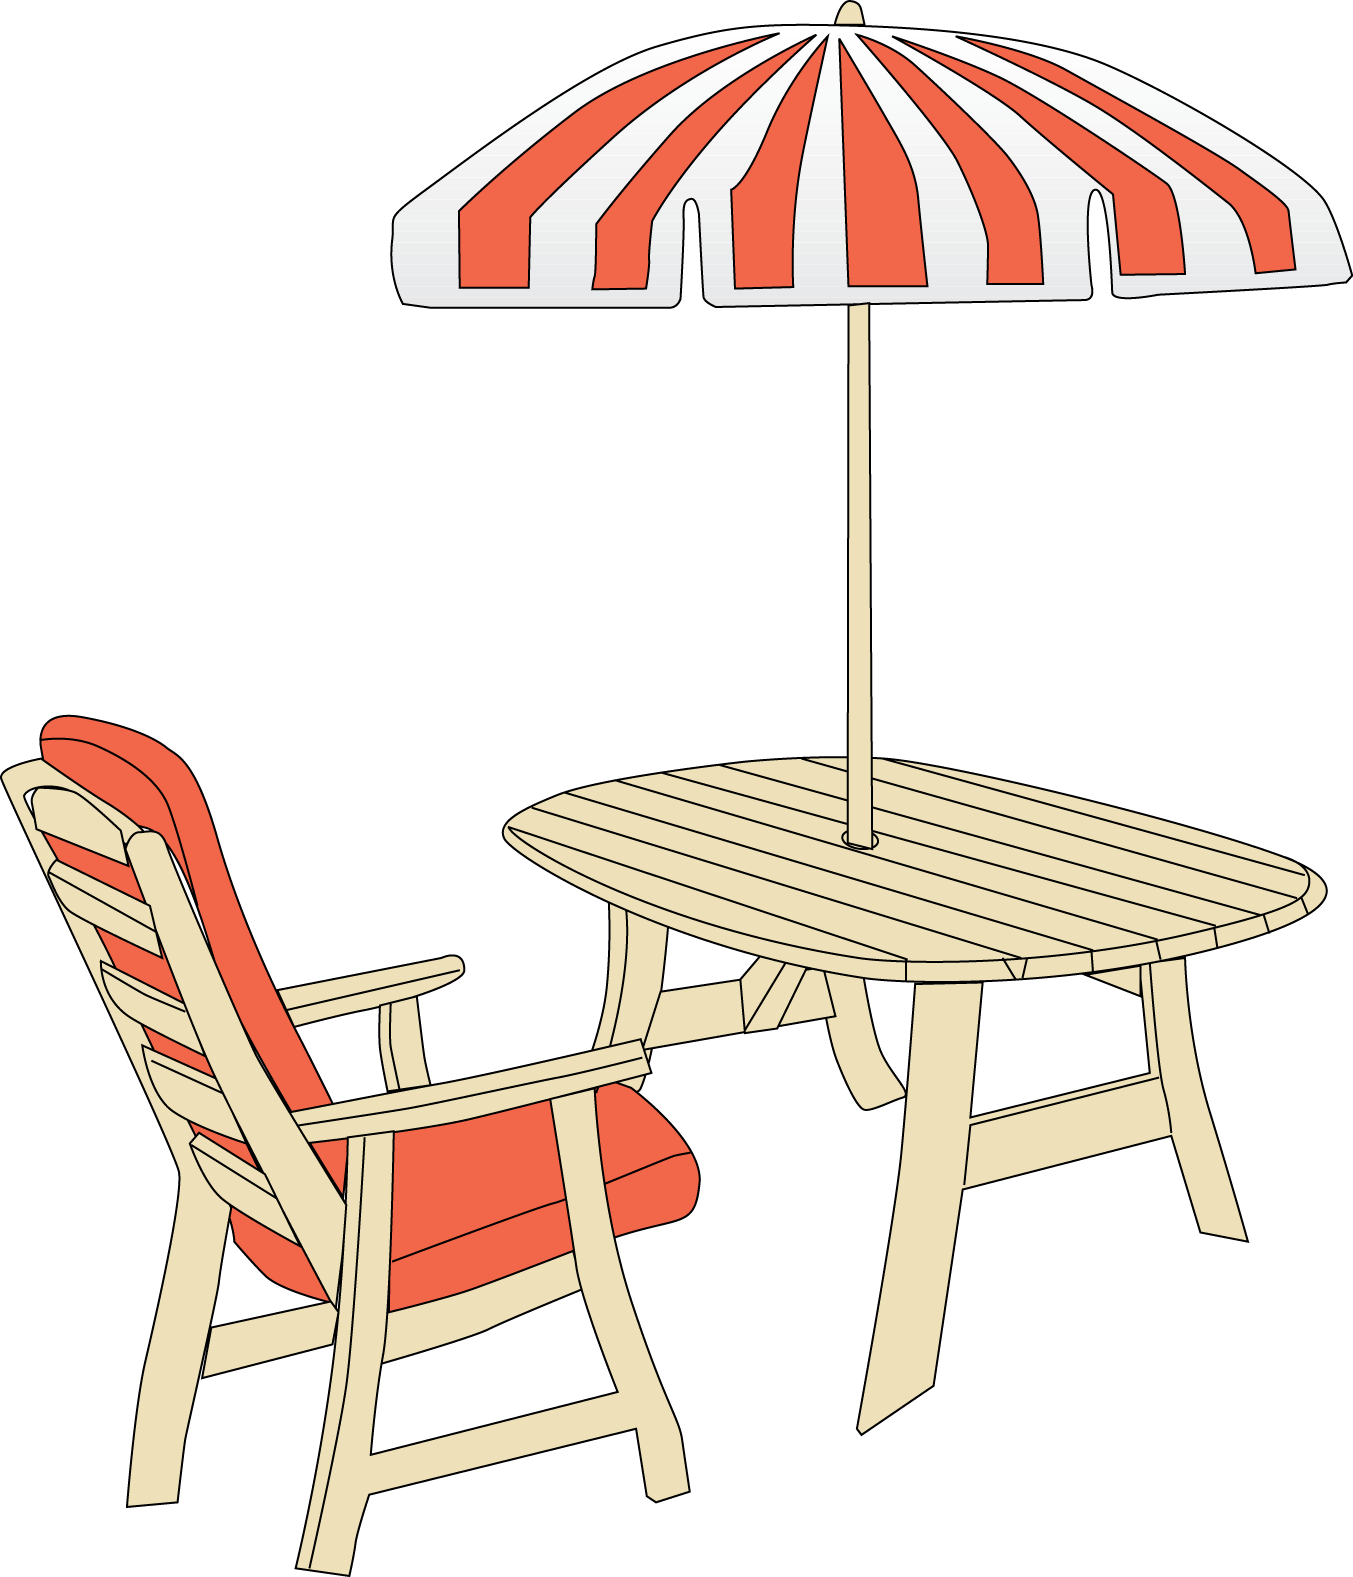 Patio umbrella clip art clipart best clipart best for Lawn chair with umbrella